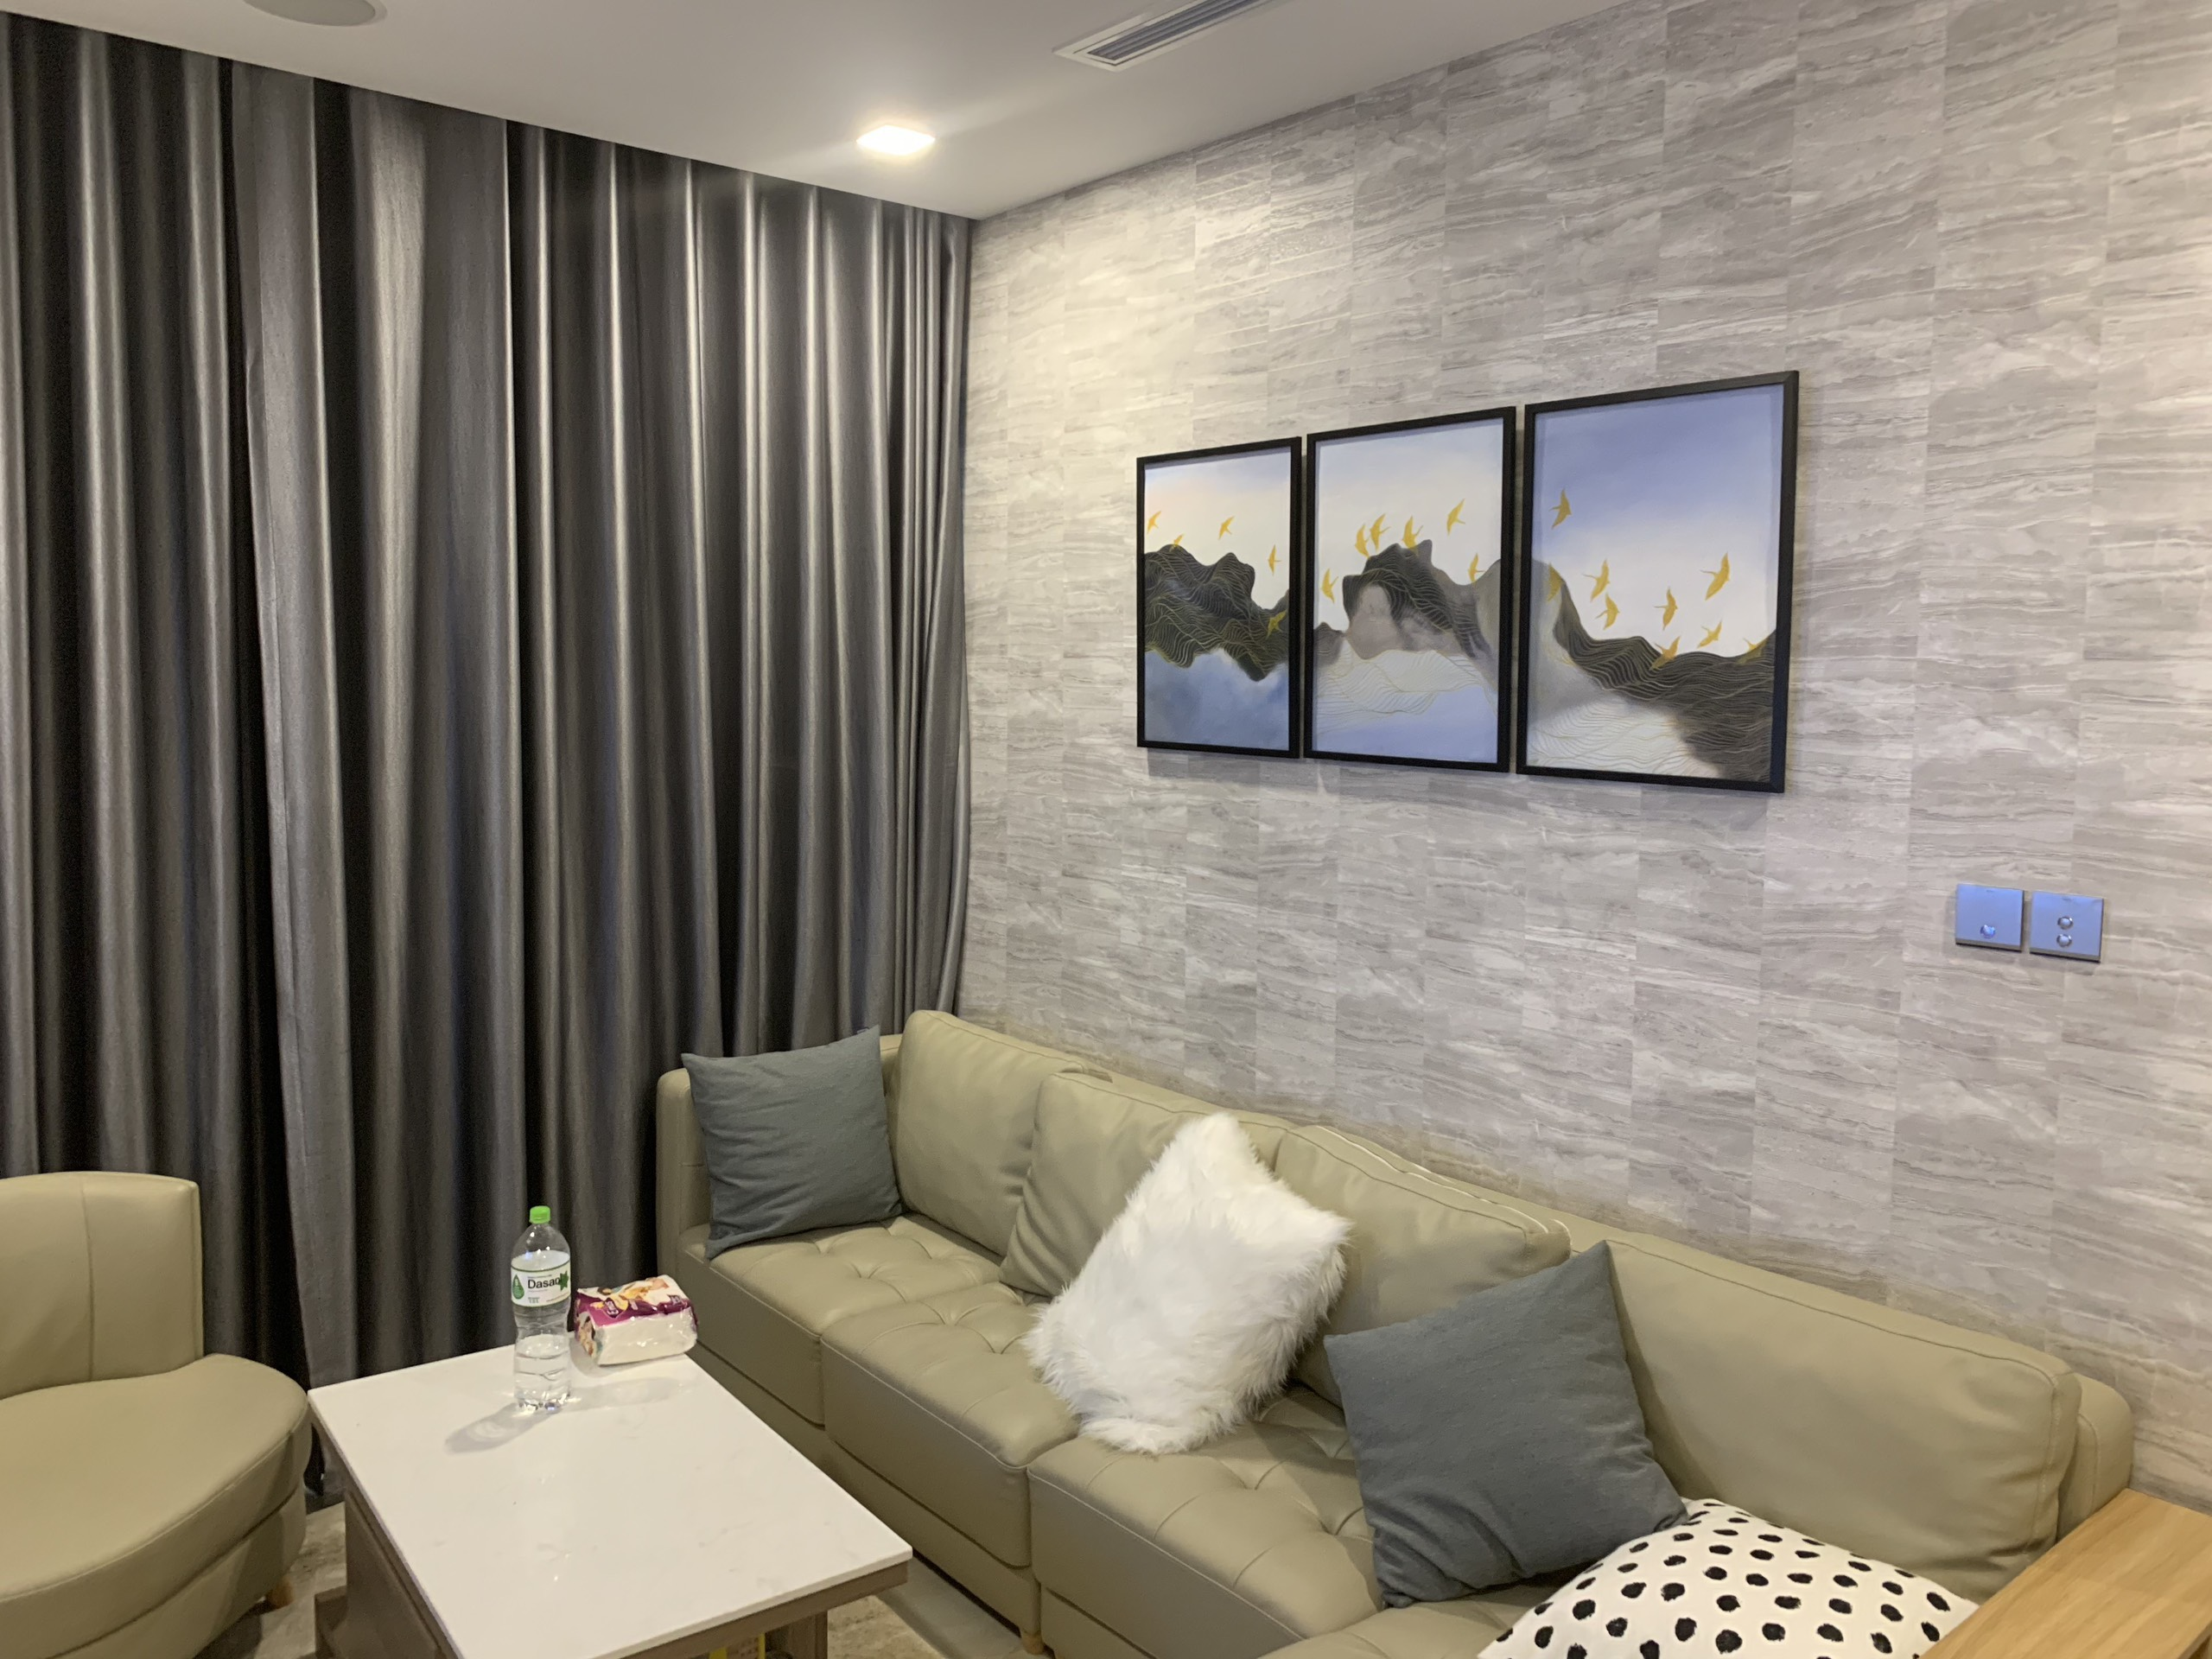 vinhomes golden river apartment for rent in district 1 hcmc D1022483(15)